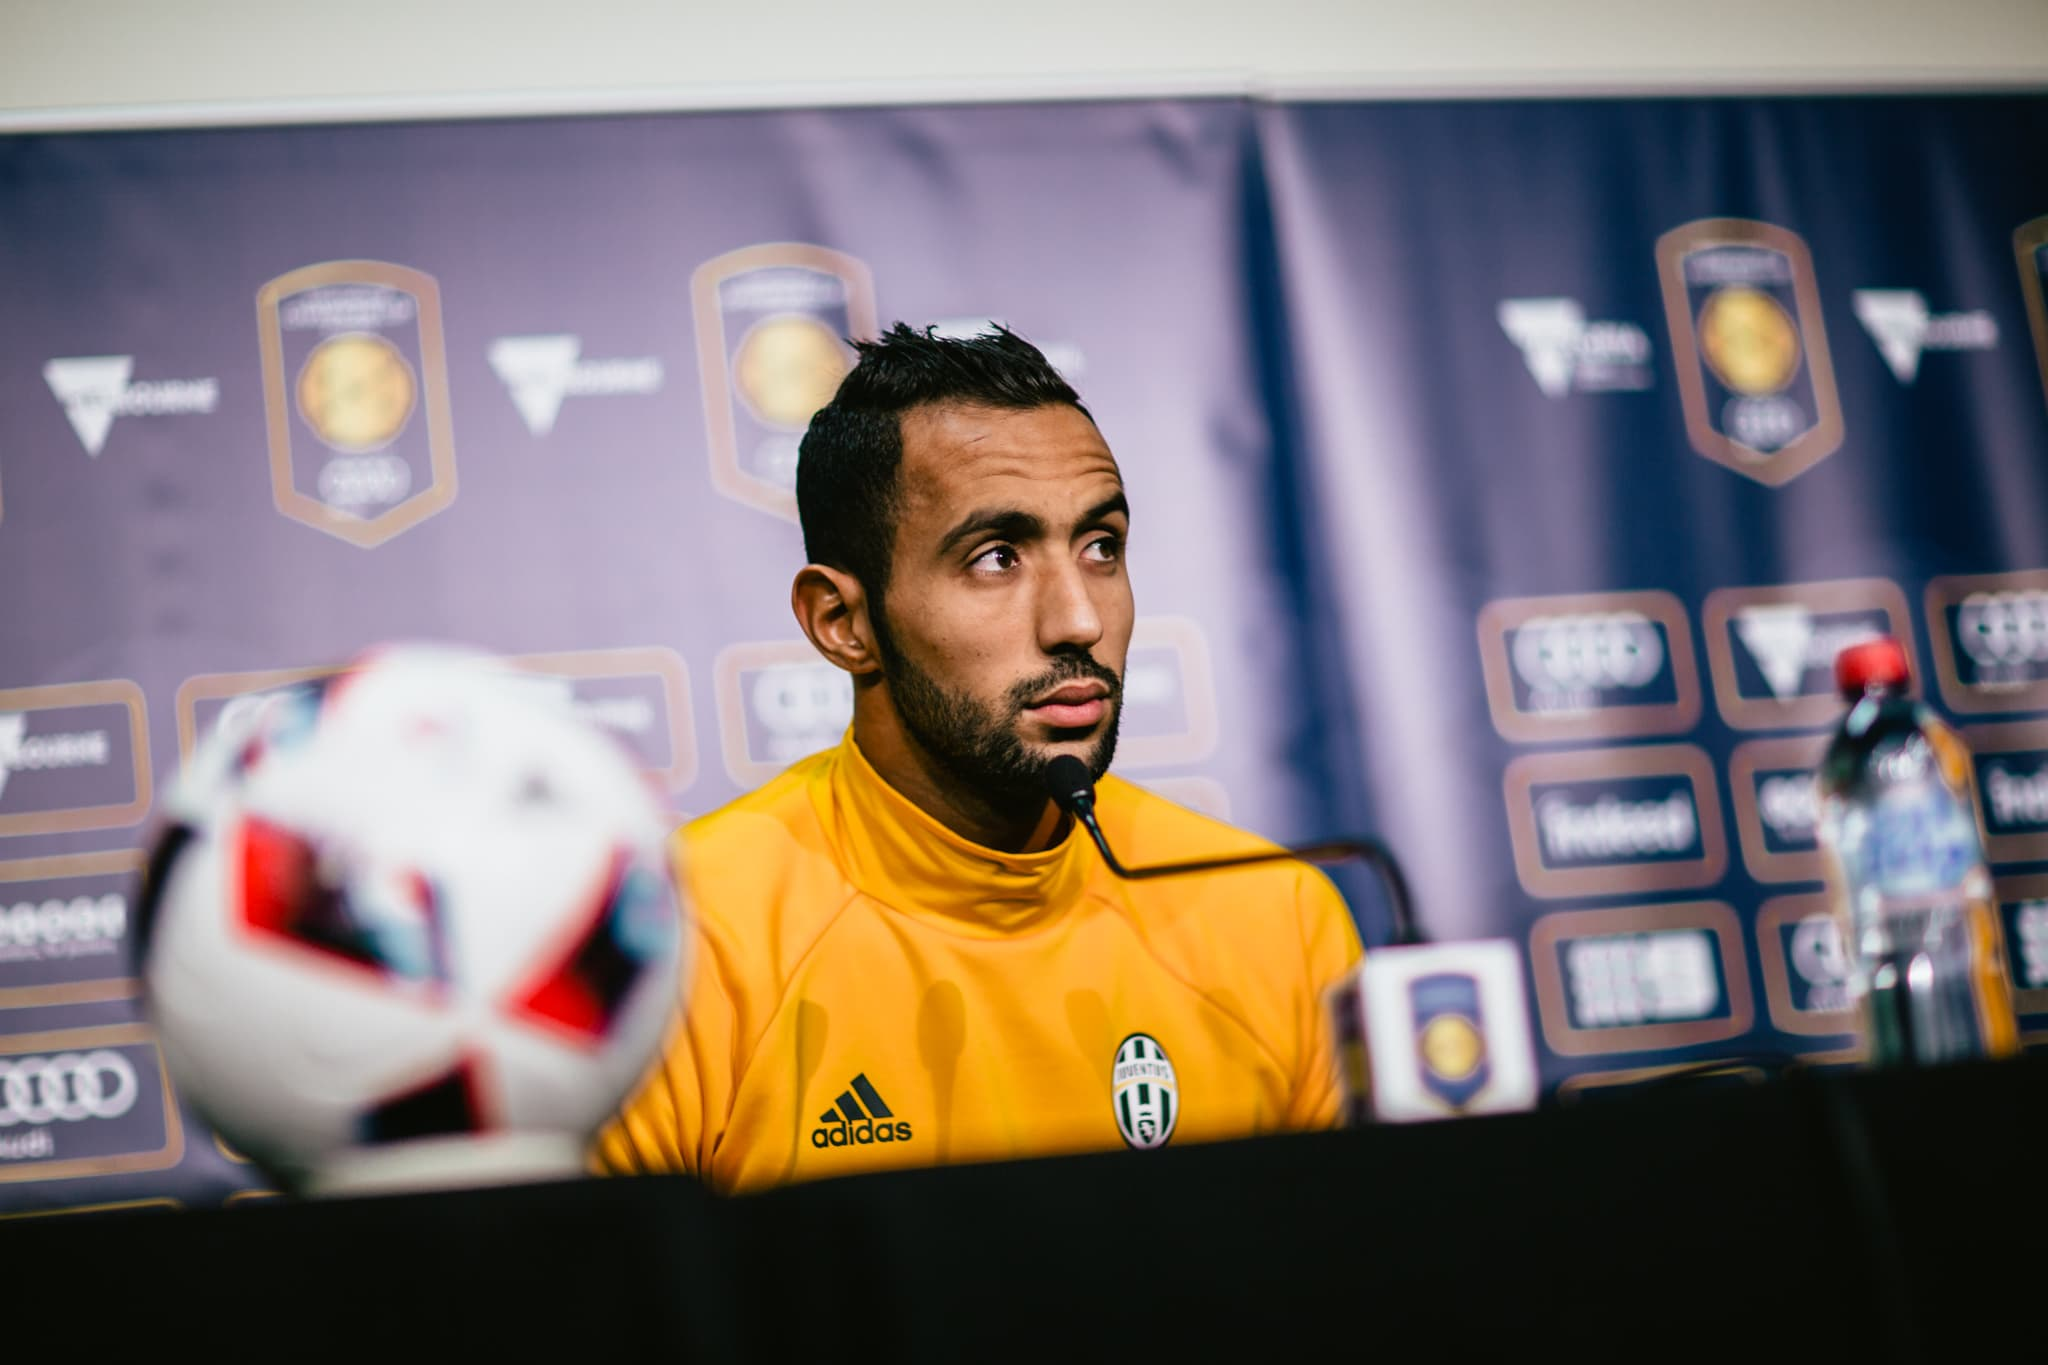 juventus player at press conference in melbourne